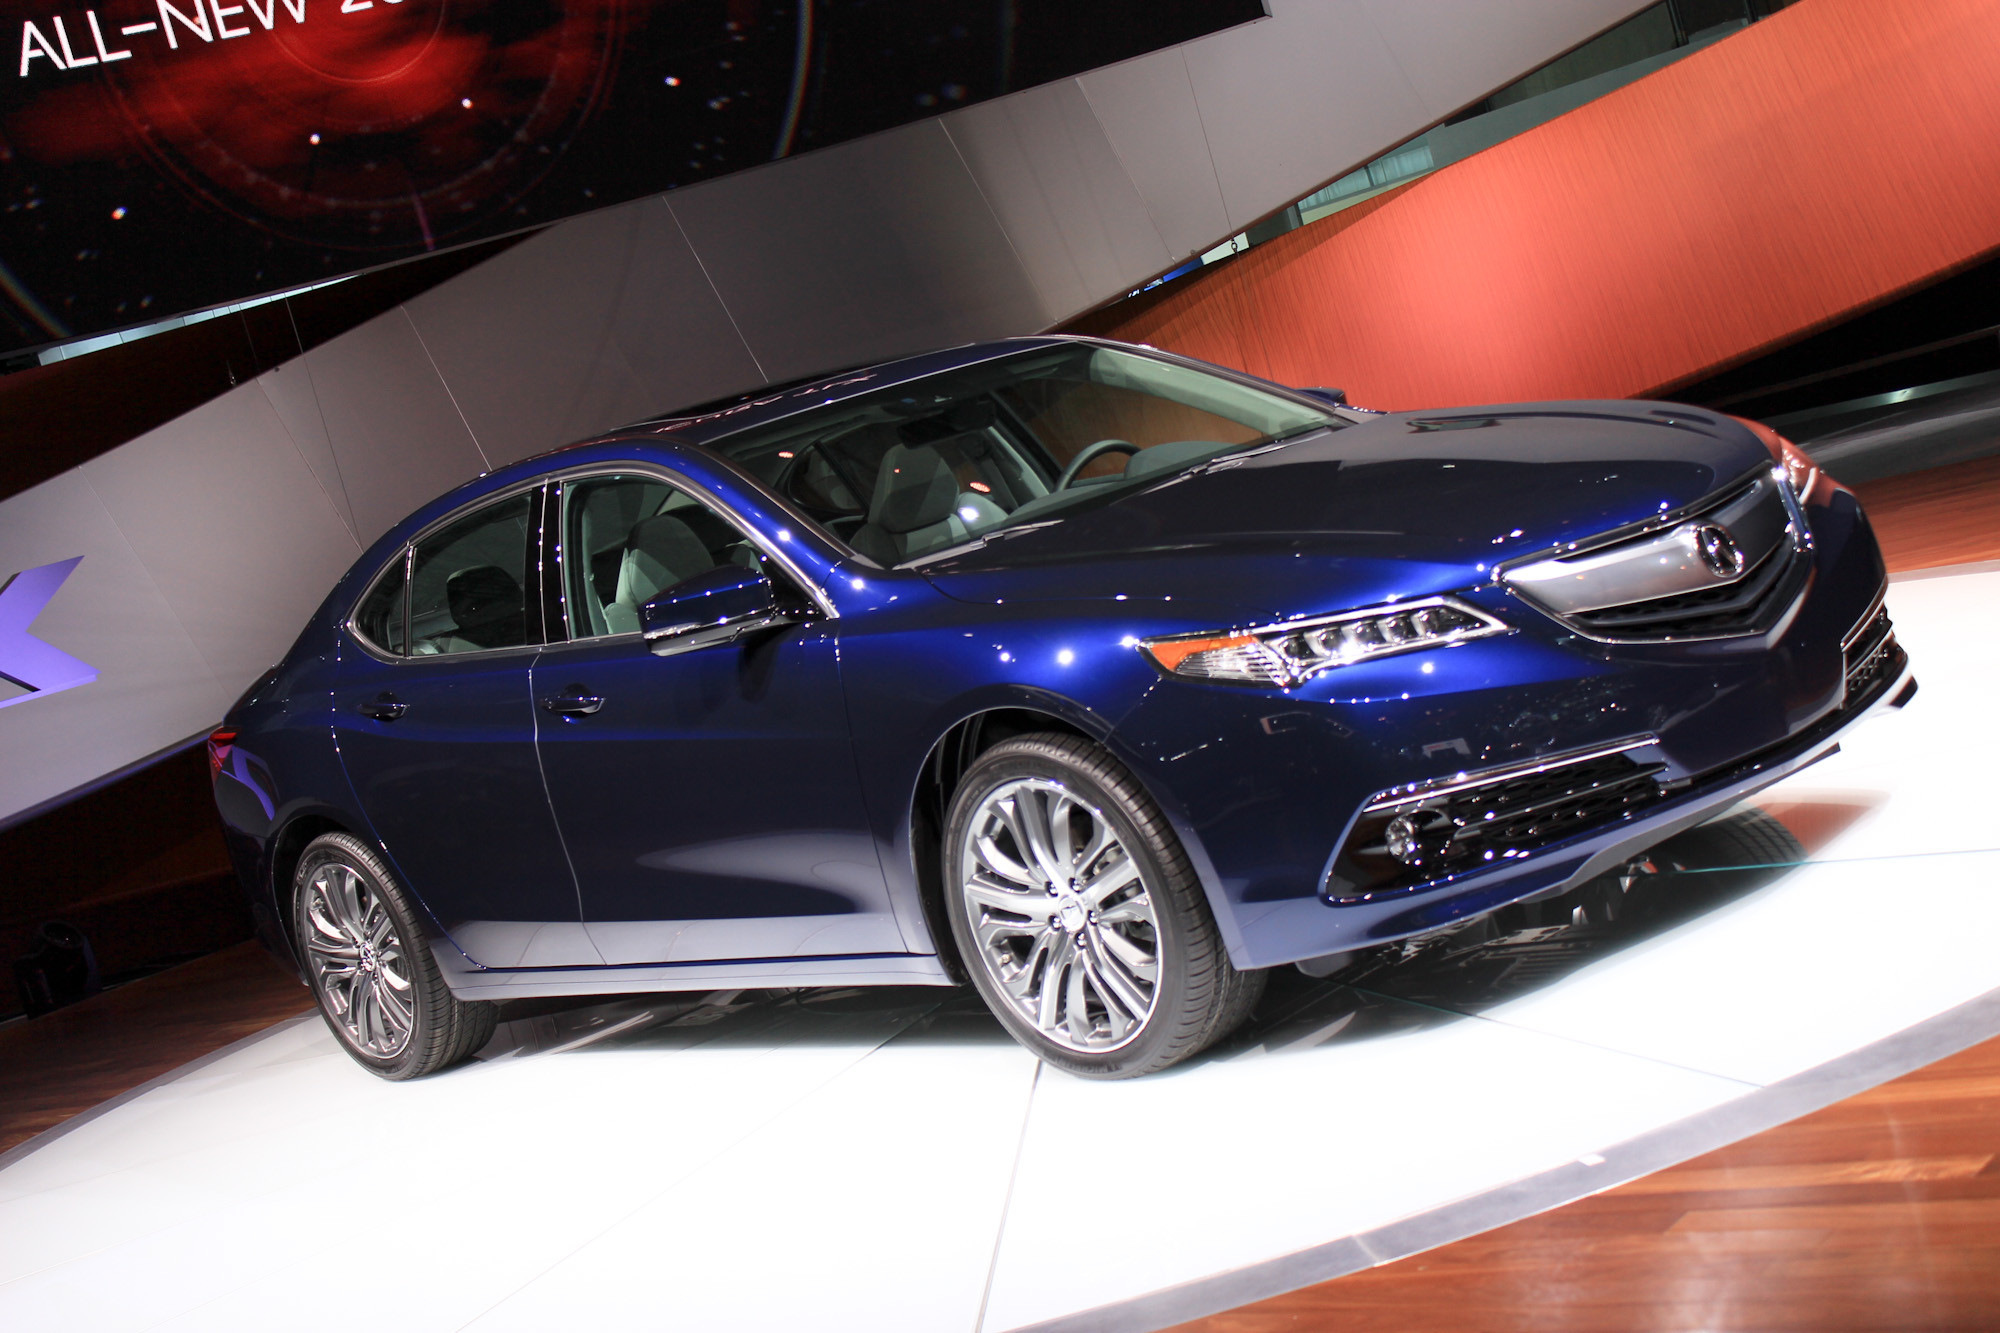 Acura Tlxs Review 2015 Acura Sedan Acura Tlx 2010 Inspirational Acura Tlx 2015 1600 0d